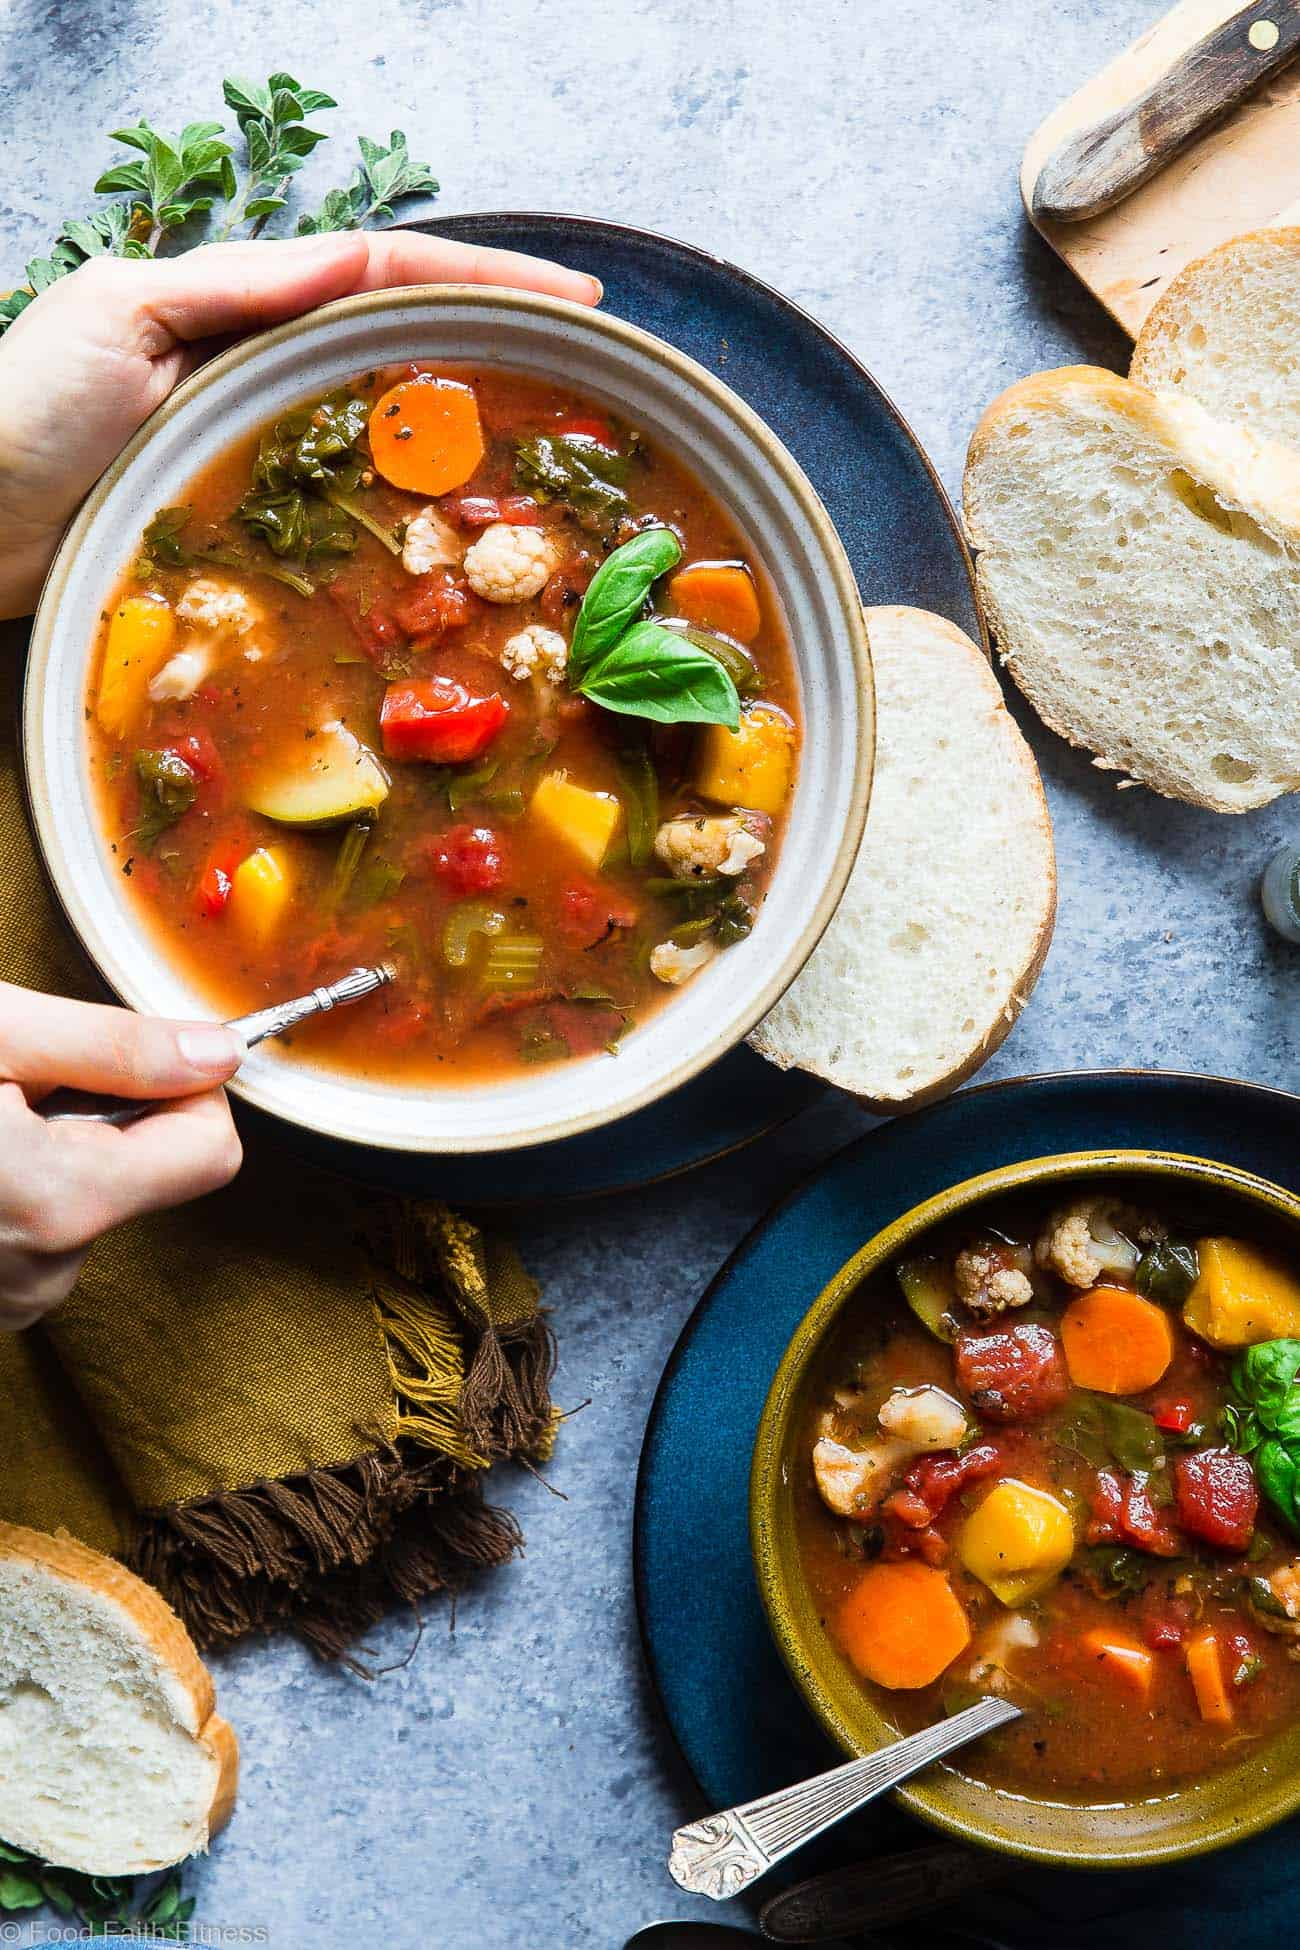 Easy Homemade Crockpot Vegetable Soup Recipe - Let the crockpot do the work for you with this simple soup that is a whole30, paleo and vegan dinner with only 1 SmartPoint and 85 calories! A family friendly dinner for busy weeknights that will please the pickiest of eaters! | Foodfaithfitness.com | @FoodFaithFit